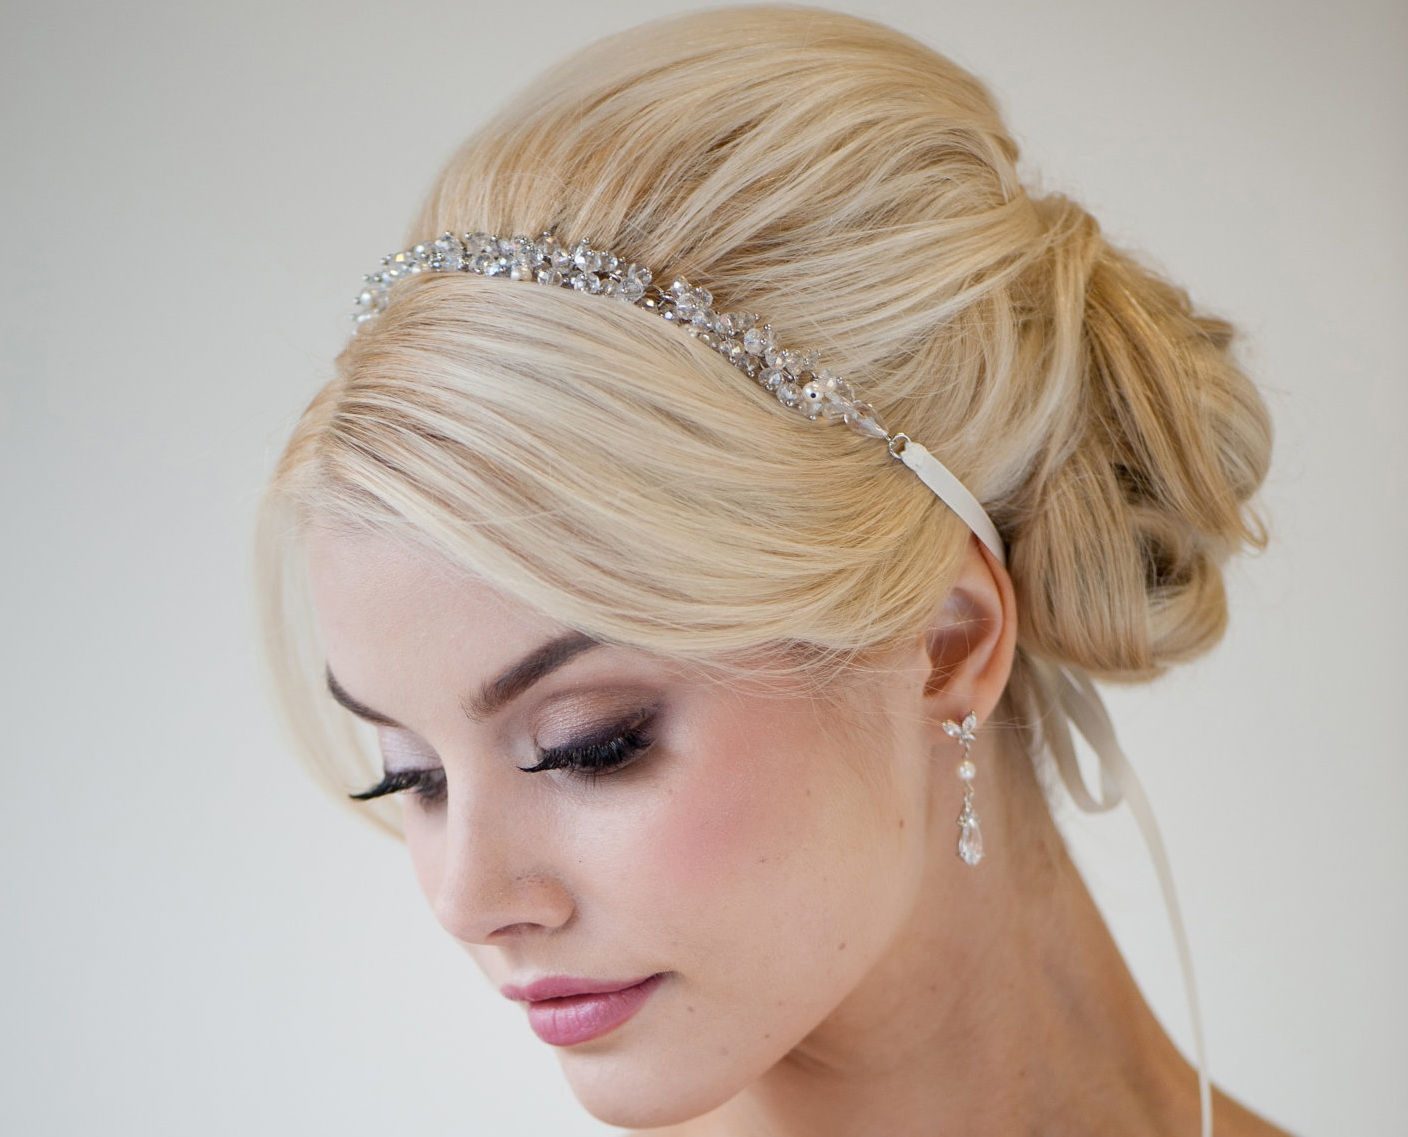 Fabulous Exquisite Wedding Hairstyles For Brides Amp Bridesmaids Hairstylo Hairstyle Inspiration Daily Dogsangcom